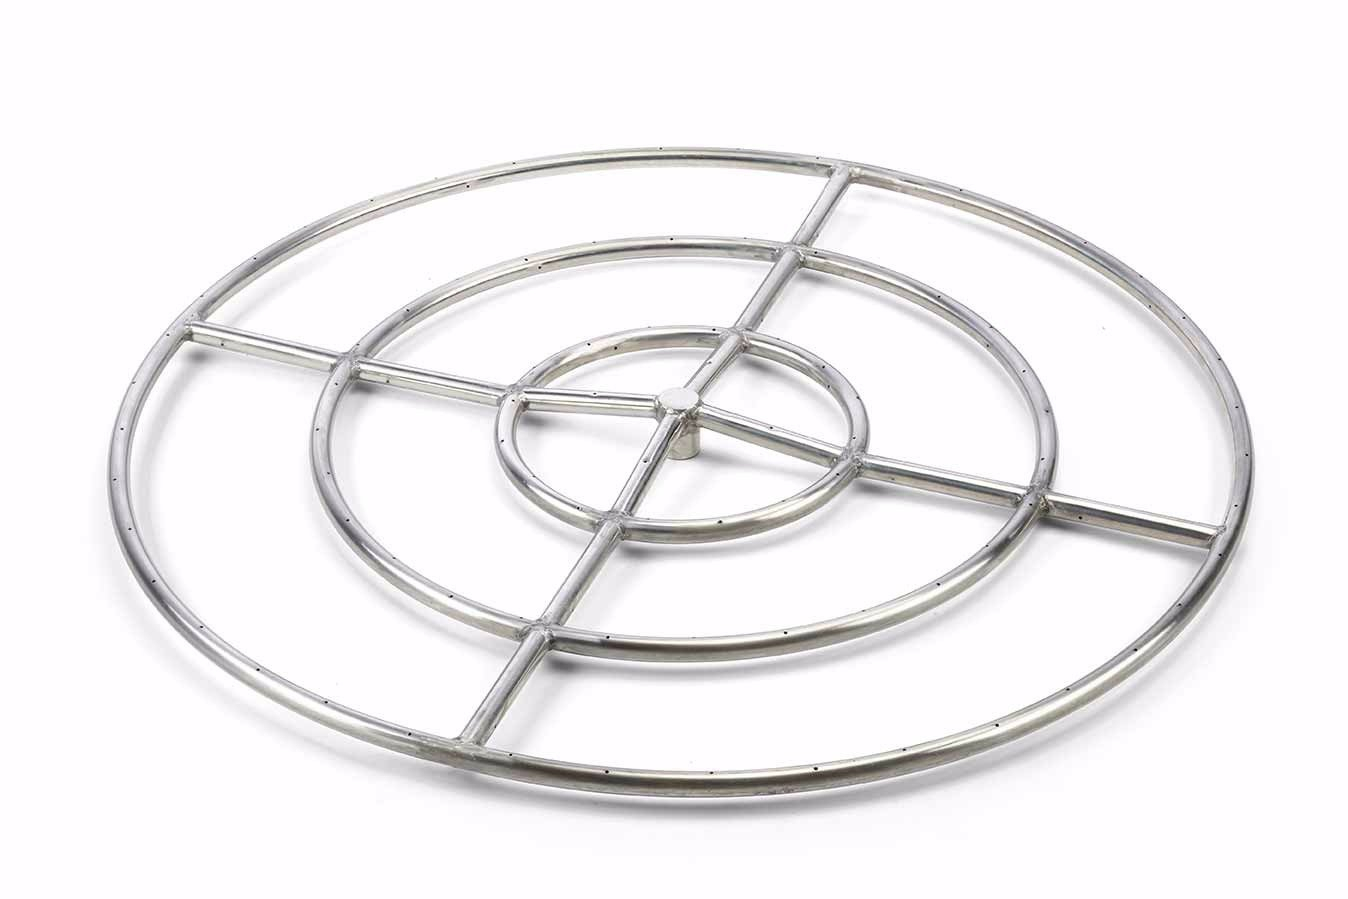 Round Fire Pit Insert Kit Match Lit Hearth Products Controls Co pertaining to dimensions 1348 X 899